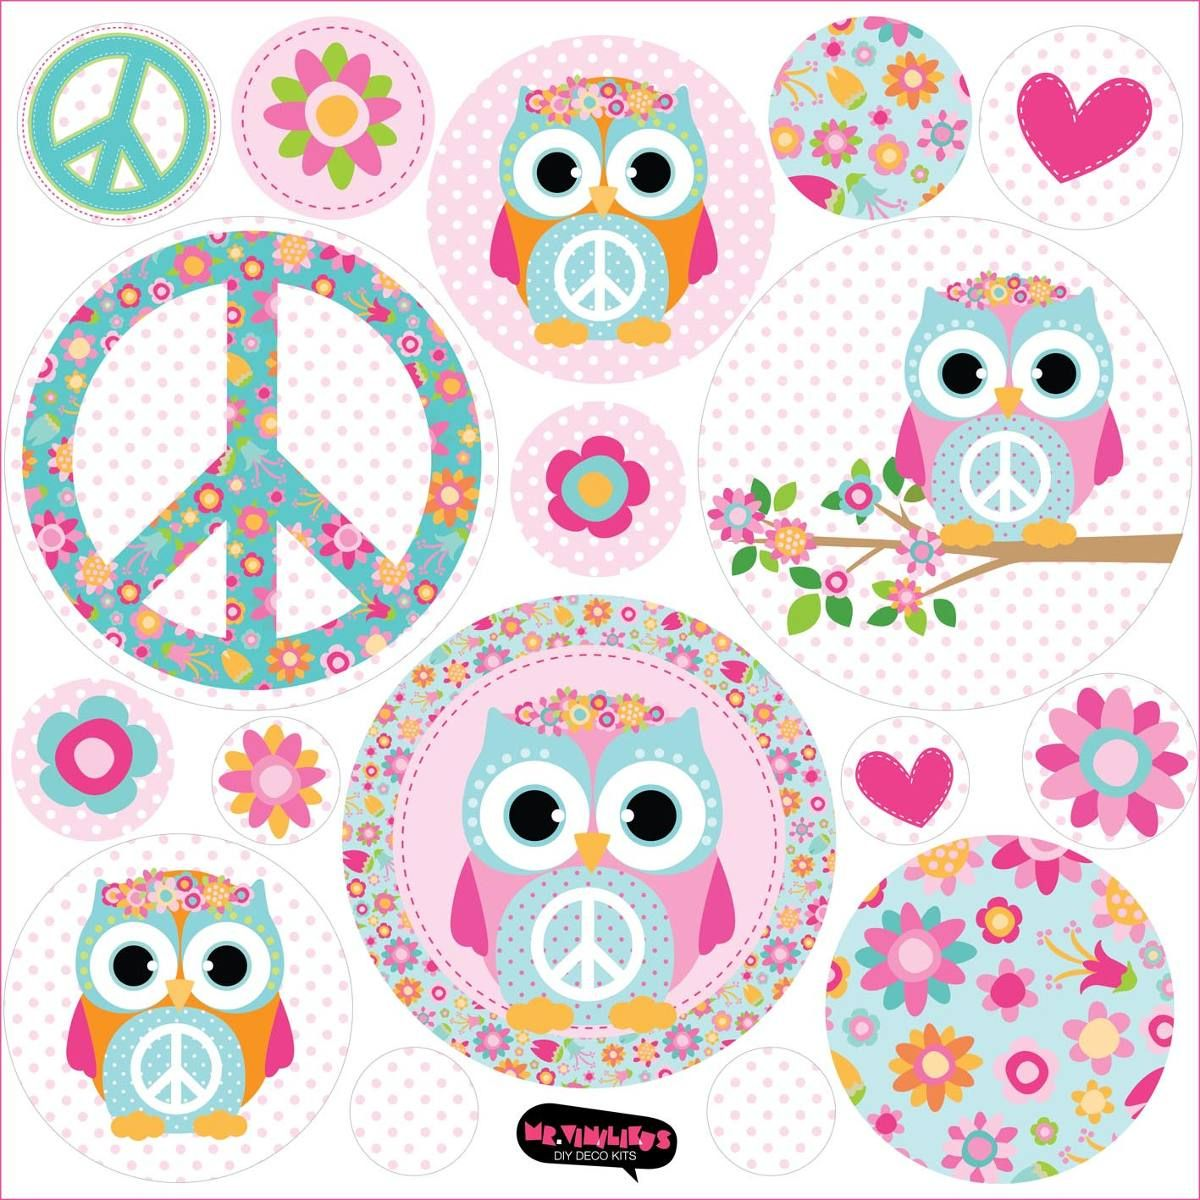 MommyLhey Even My Phone Wants To Look Cute 2 Pinterest Owl